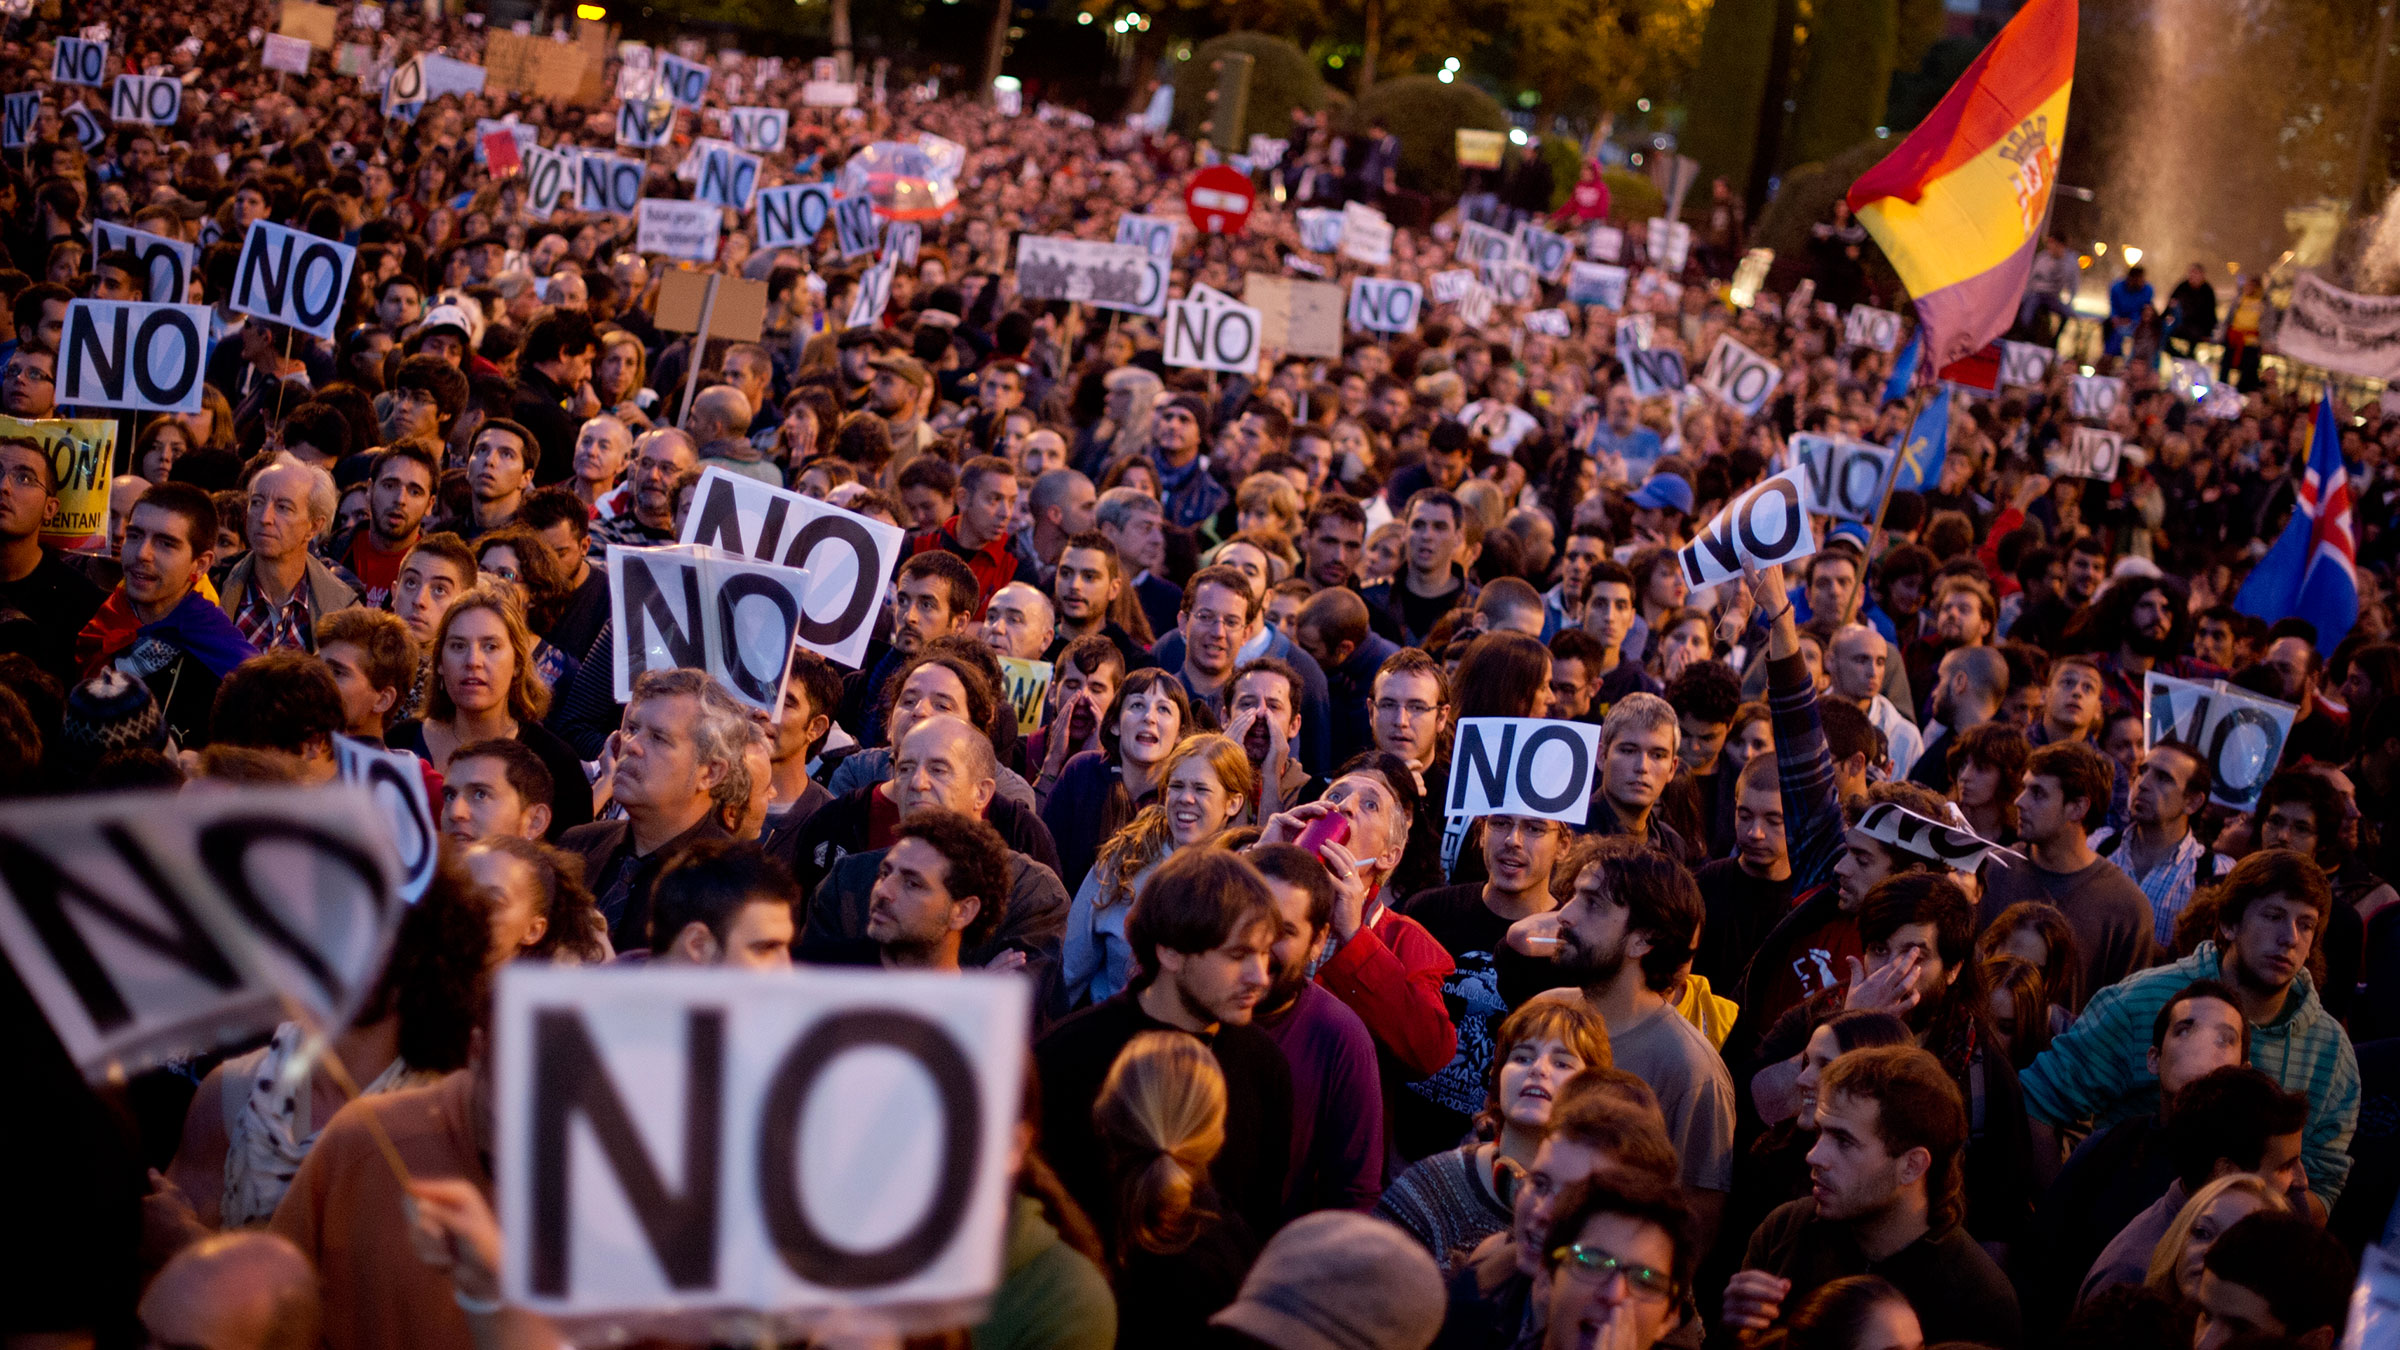 MADRID, SPAIN - SEPTEMBER 29: Demonstraters shout during a protest against spending cuts and the government of Mariano Rajoy   on September 29, 2012 in Madrid, Spain. Demonstrators are protesting for the third time this week near the Spanish Parliament   against austerity measures after earlier demonstrations this week brought violence and arrests. (Photo by Jasper Juinen/Getty Images)